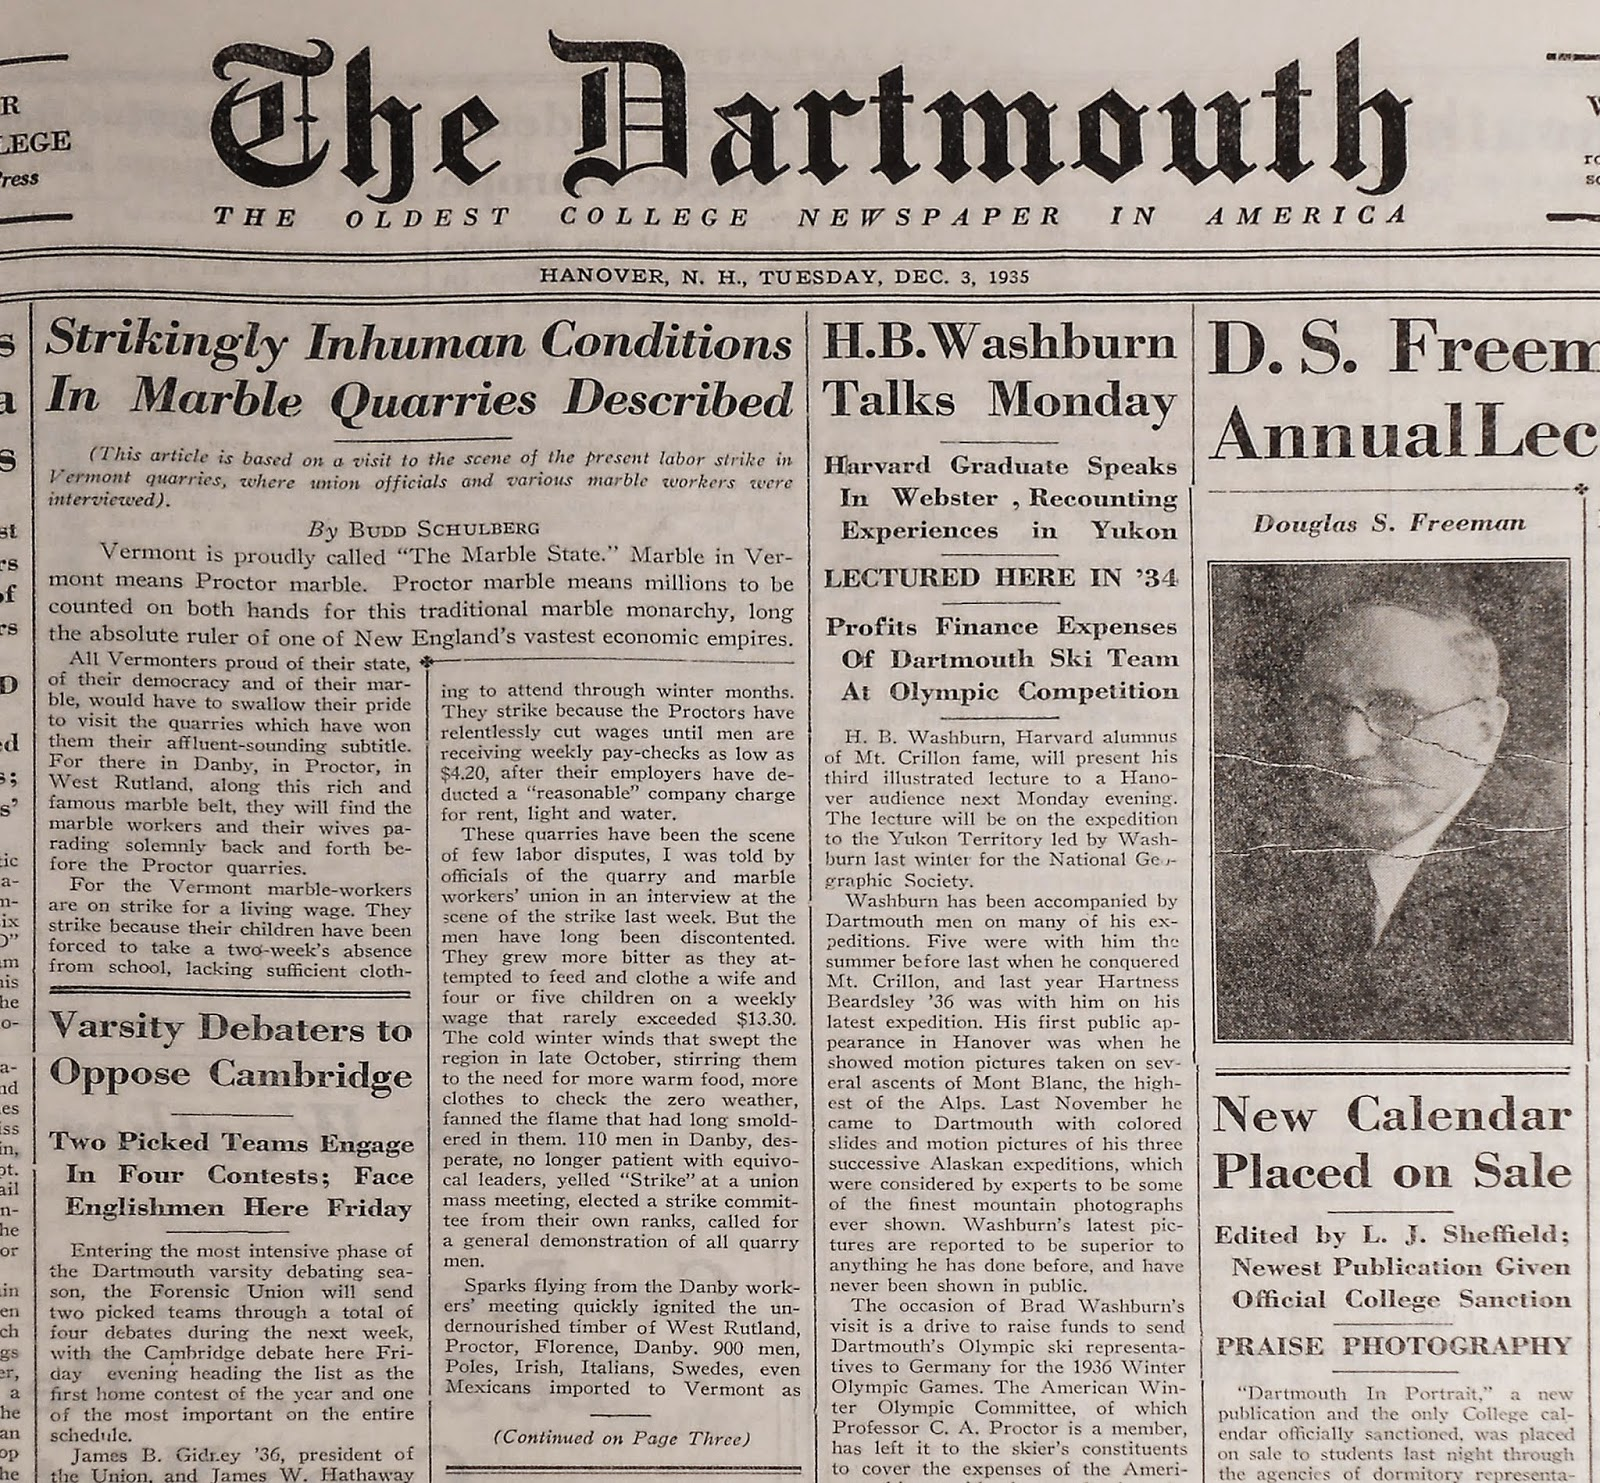 A copy of The Dartmouth, featuring an article by Budd Schulberg.